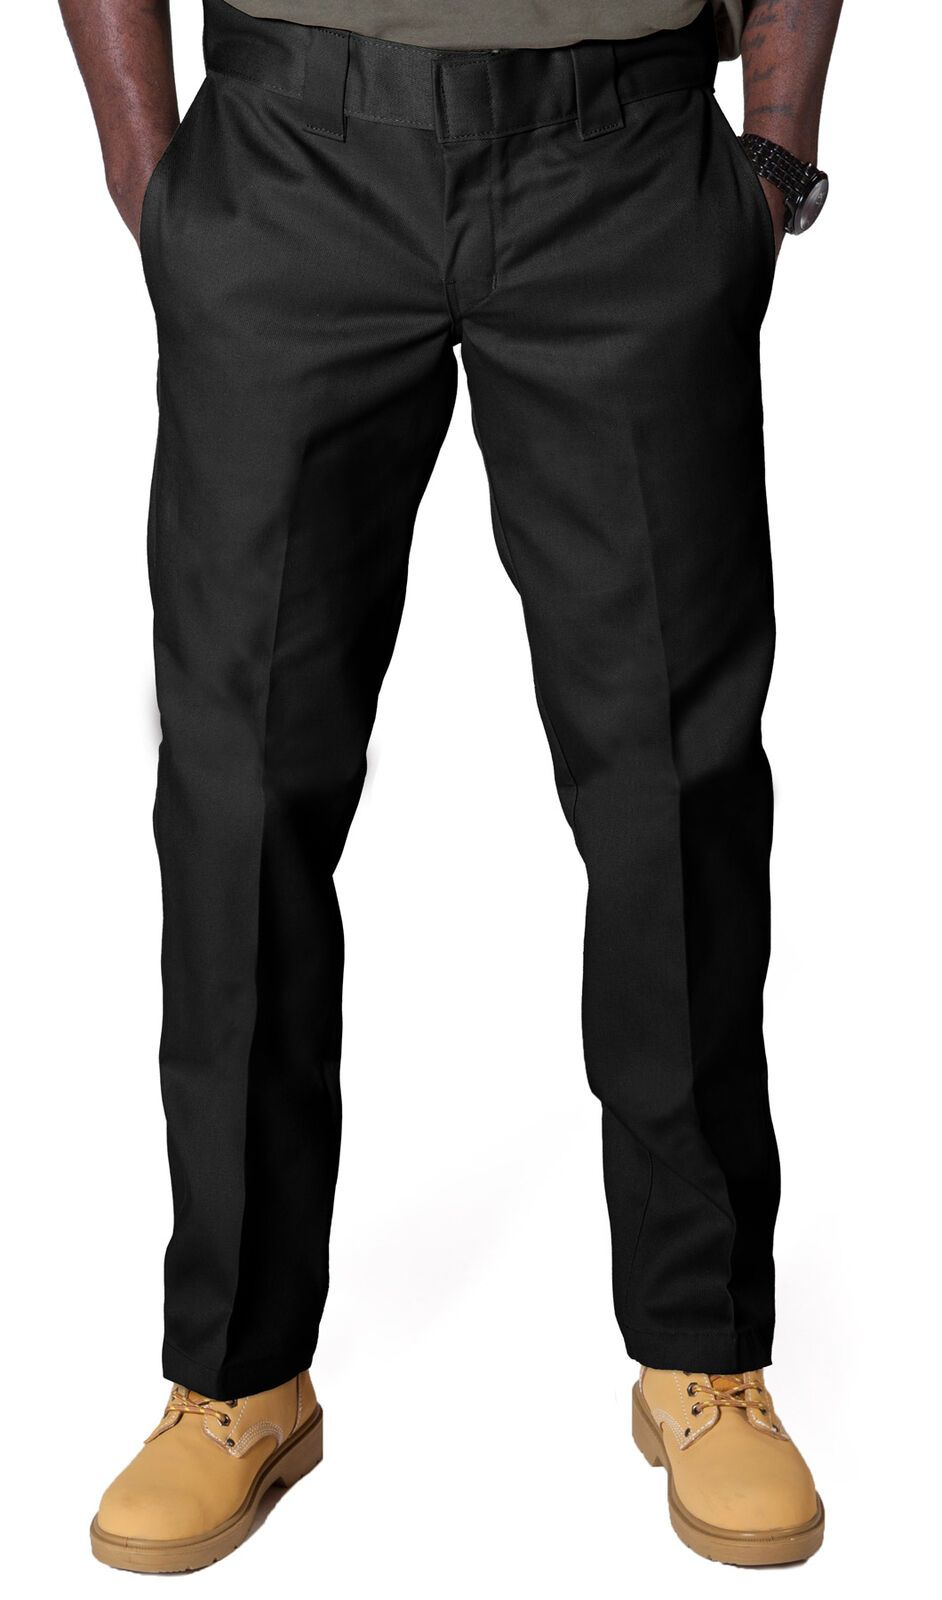 Front of Dickies slim fit 873 work pant in black, showing permanent crease, twill fabric and tunnel belt loops.